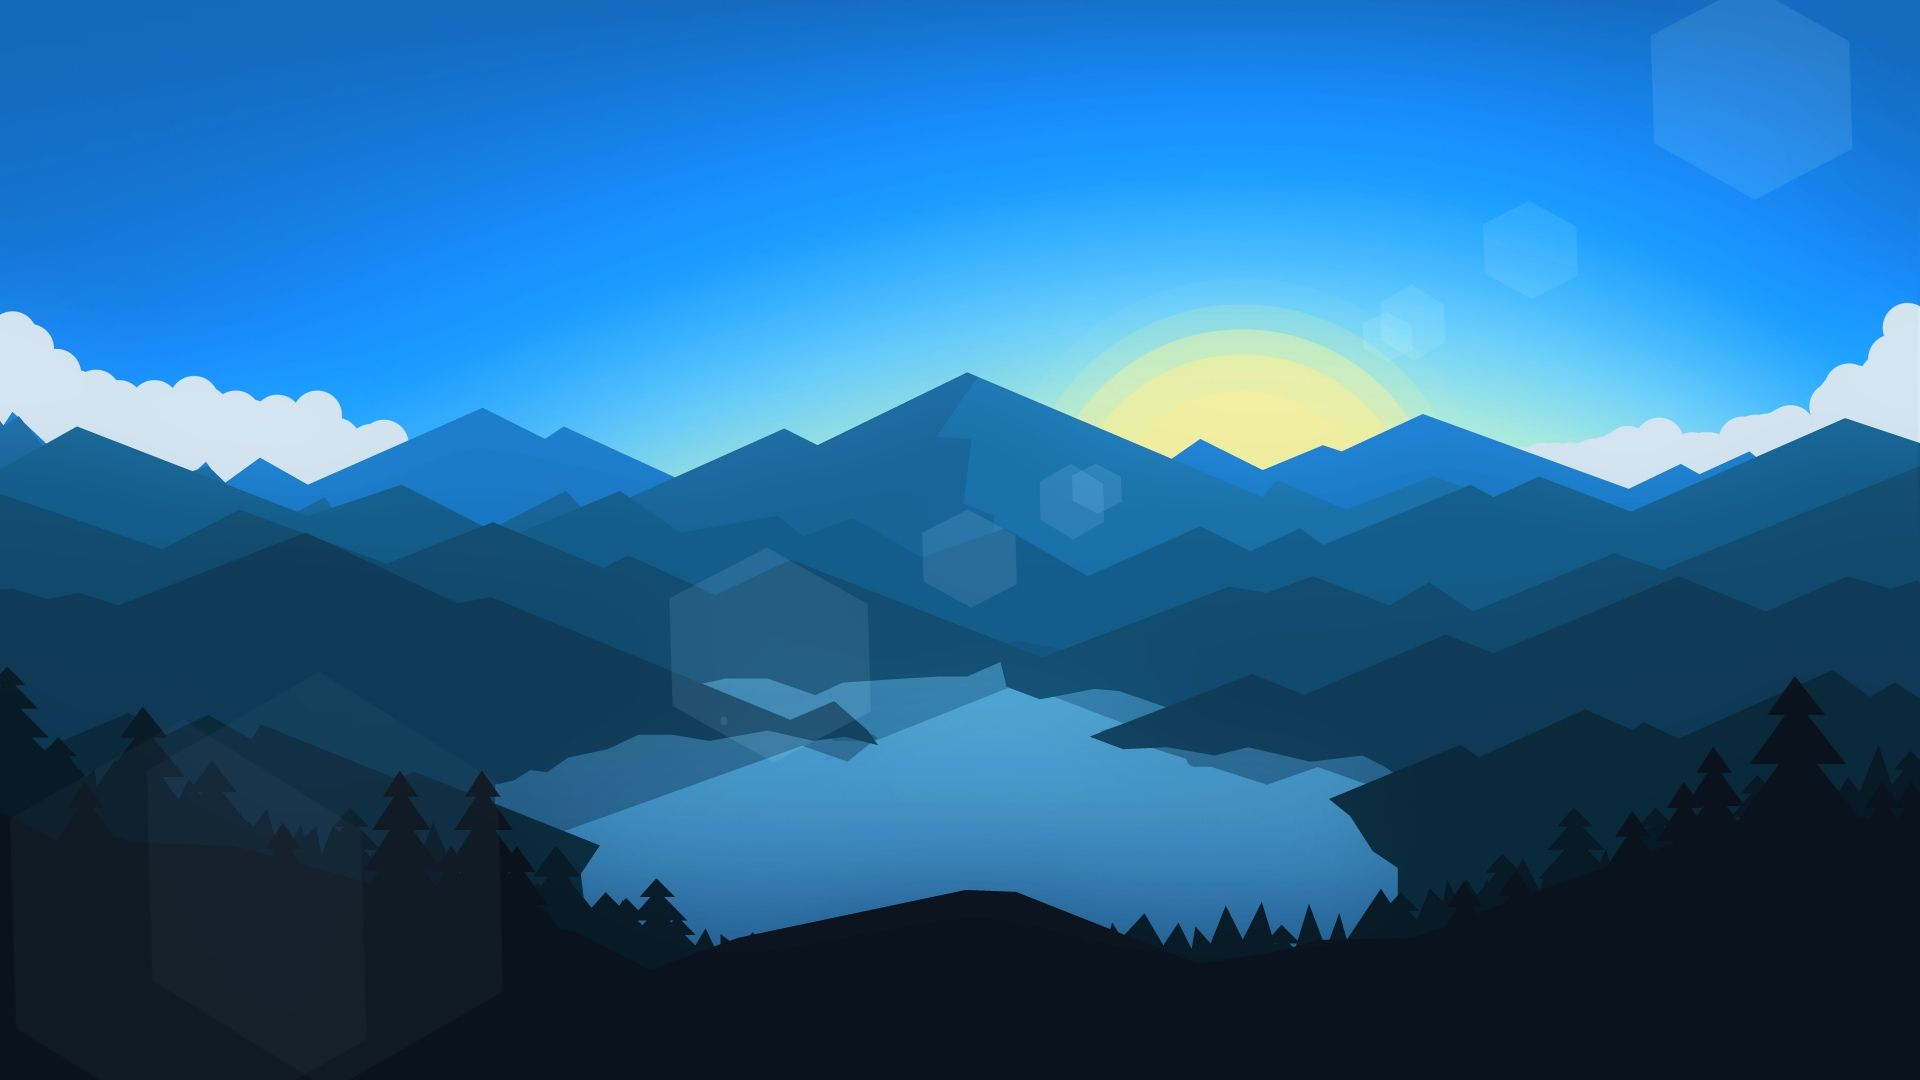 Free Mountain Vector image